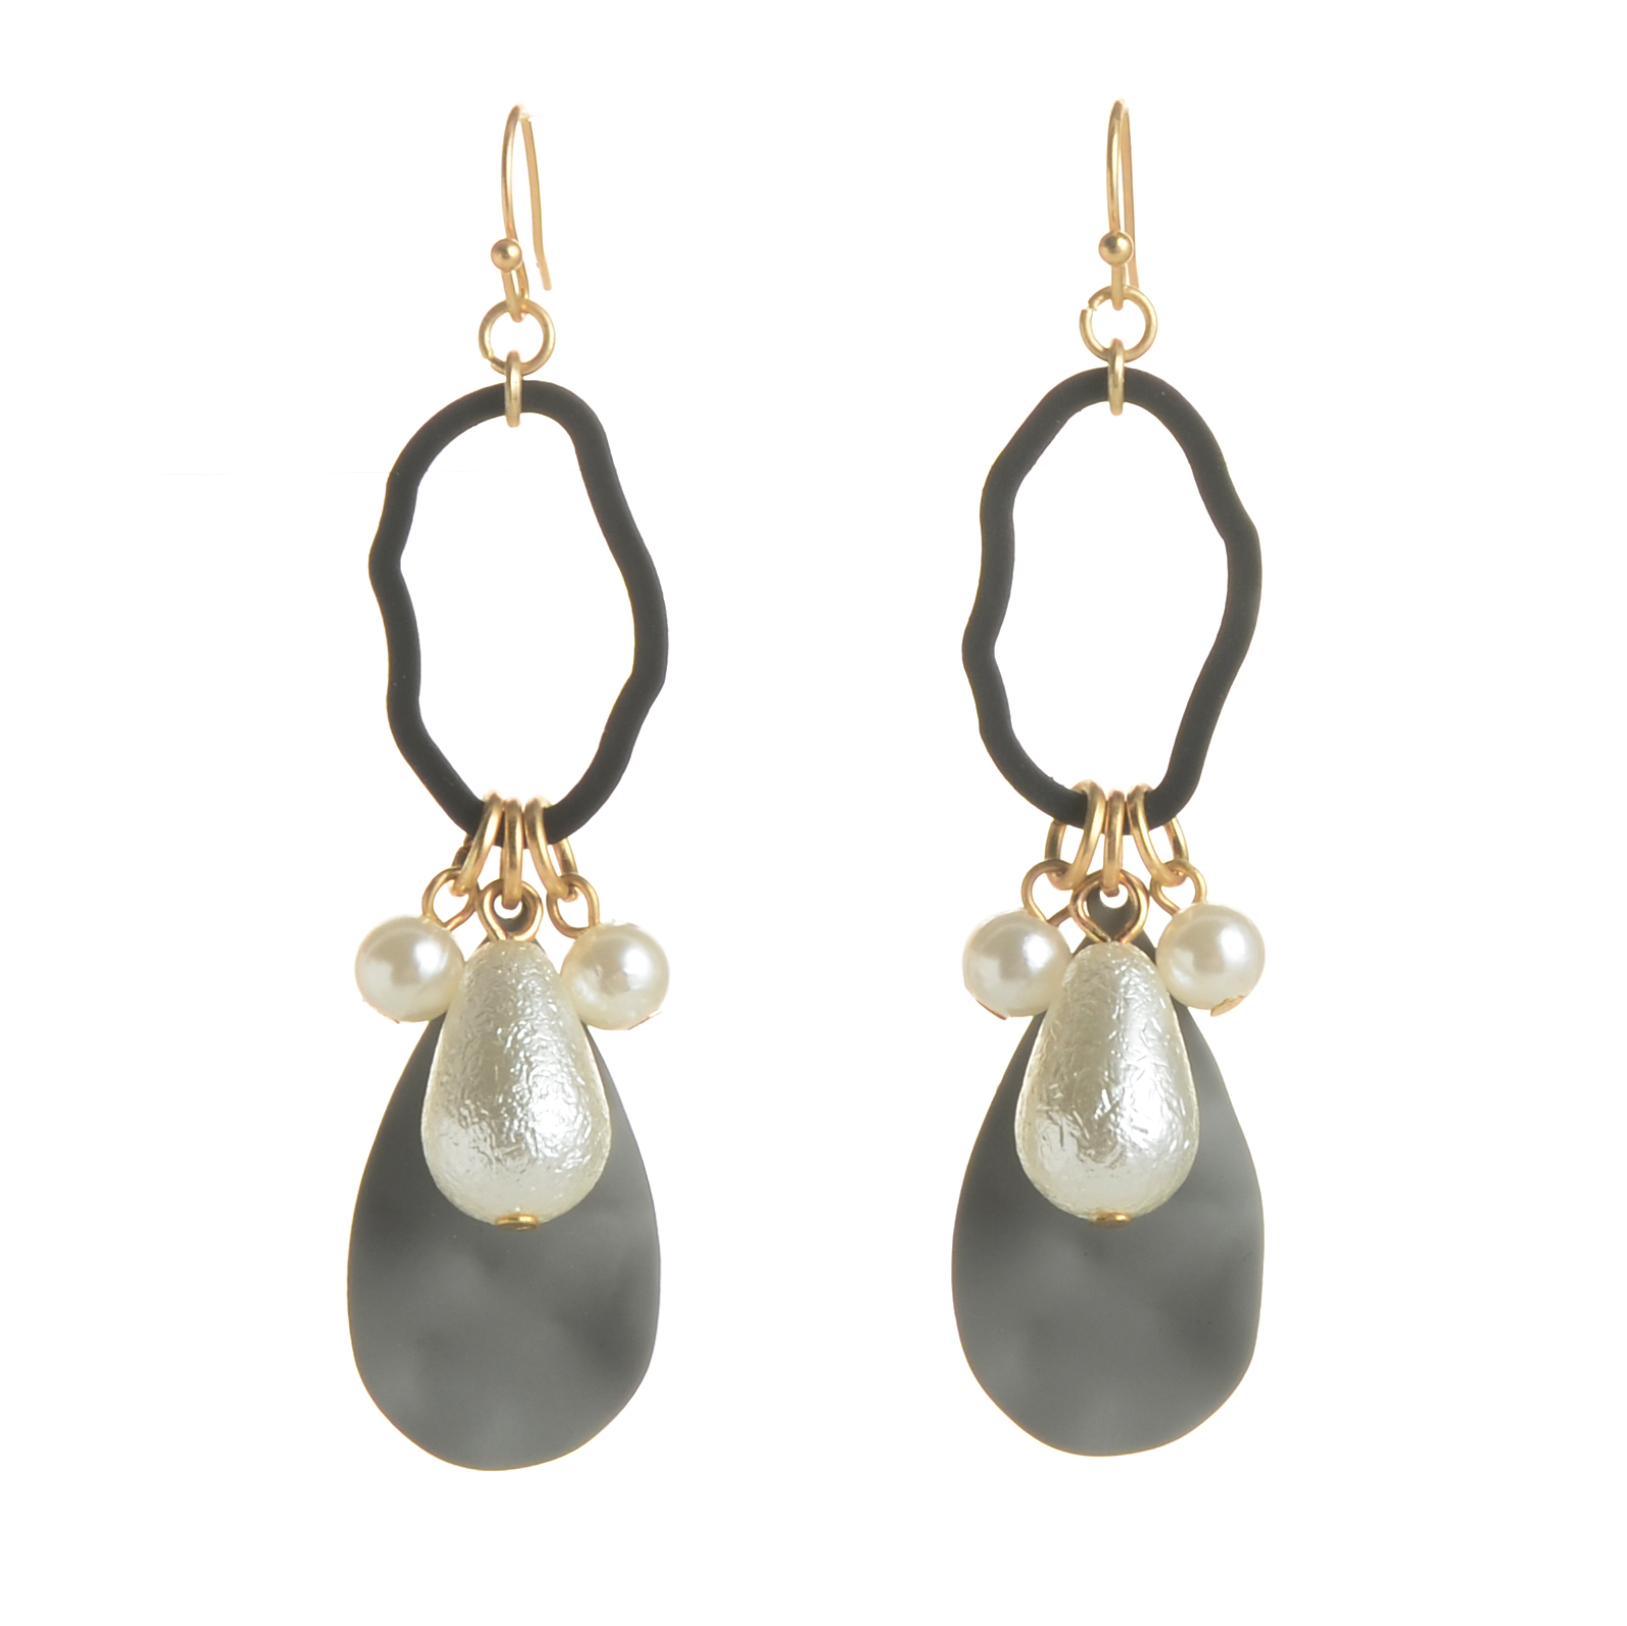 WENZHE Newest Designs Geometric Acrylic Pearl Dangle Earring Featured Image